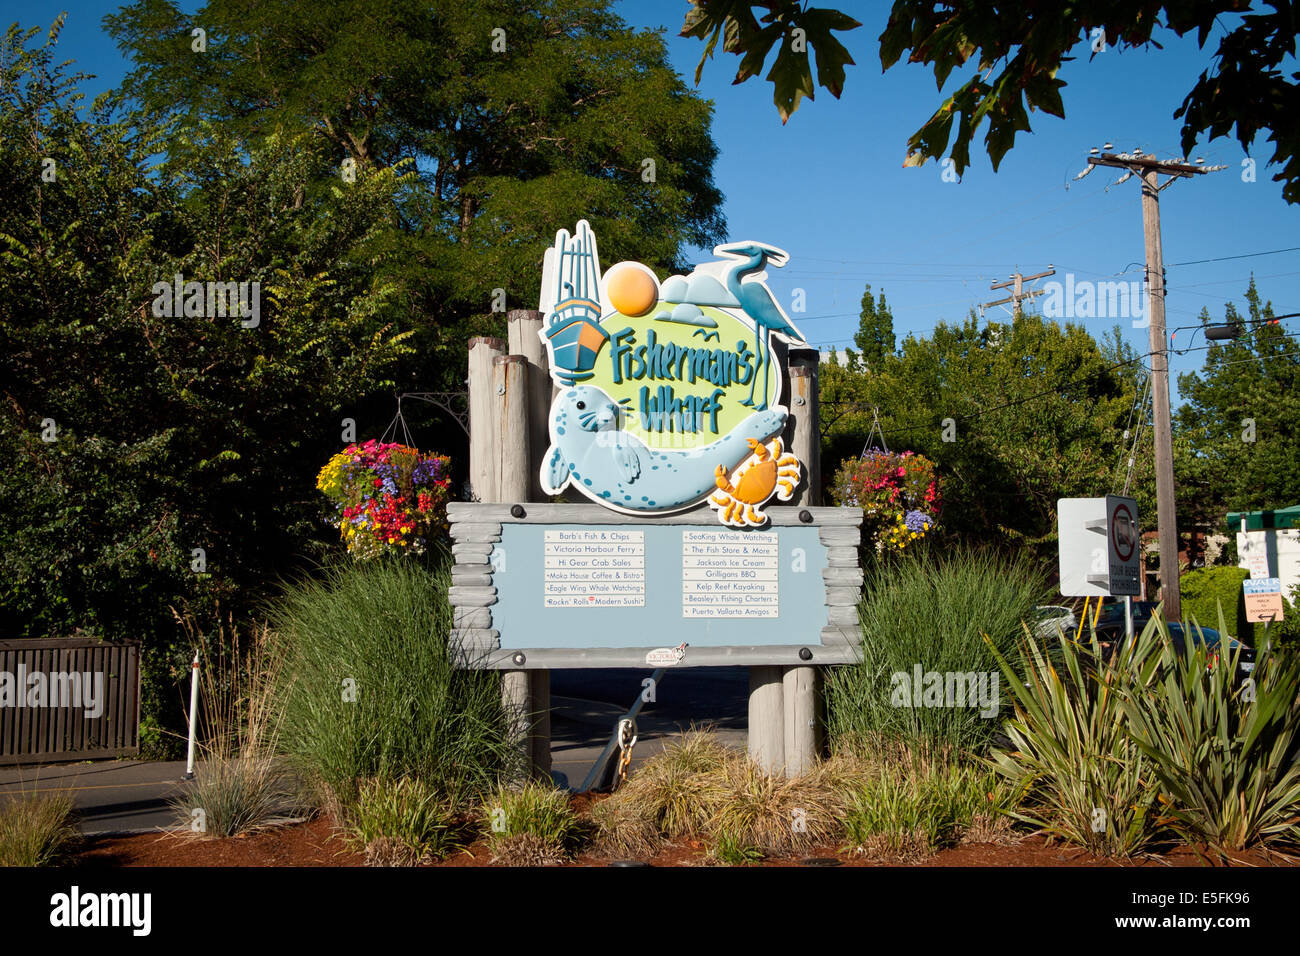 A sign at the entrance of Fisherman's Wharf in Victoria, British Columbia, Canada. Stock Photo